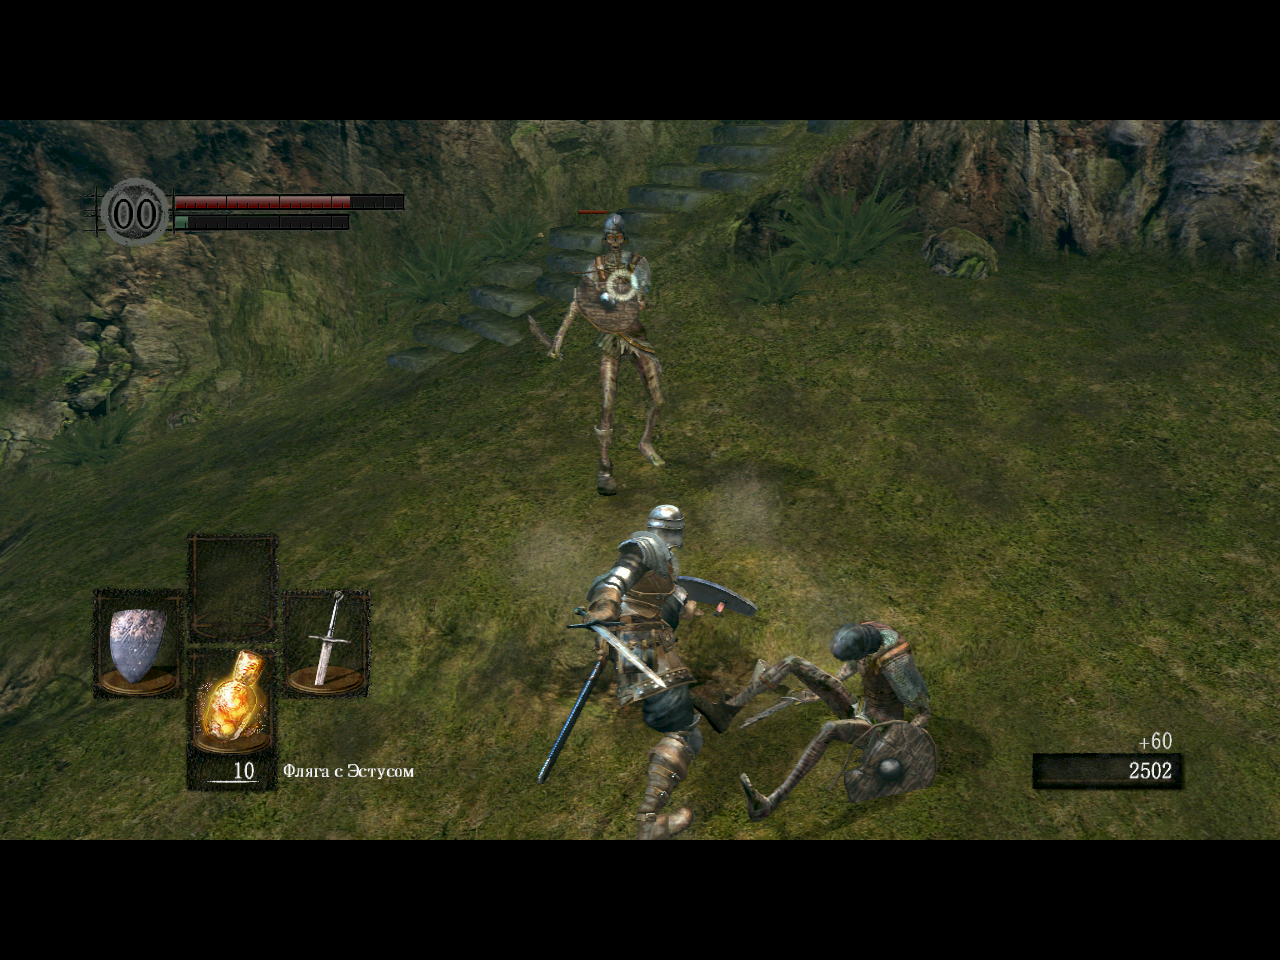 Dark Souls: Prepare to Die Edition Windows Cutting my way through the undead soldiers